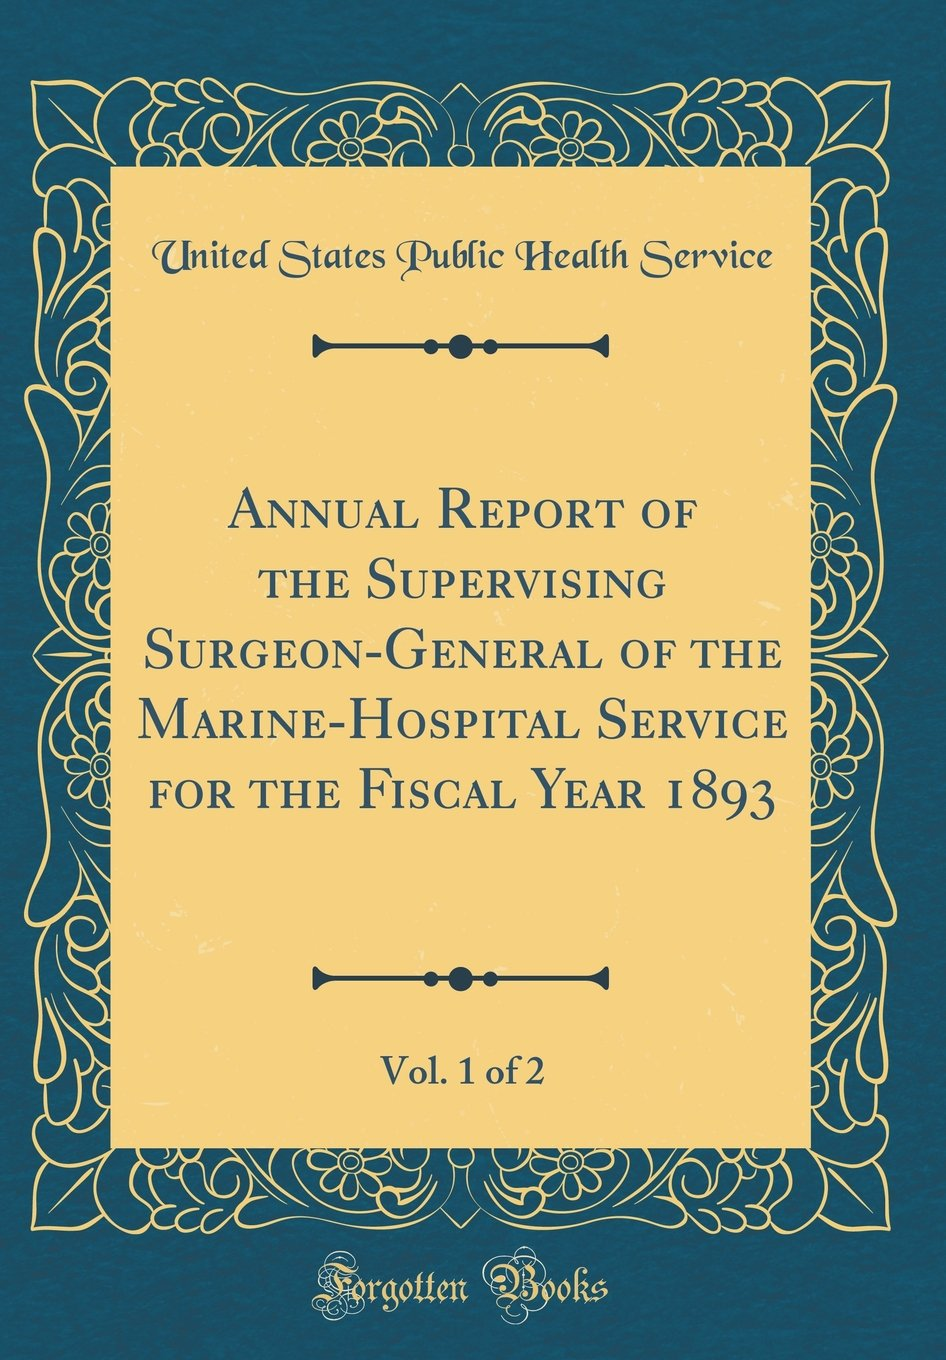 Read Online Annual Report of the Supervising Surgeon-General of the Marine-Hospital Service for the Fiscal Year 1893, Vol. 1 of 2 (Classic Reprint) PDF